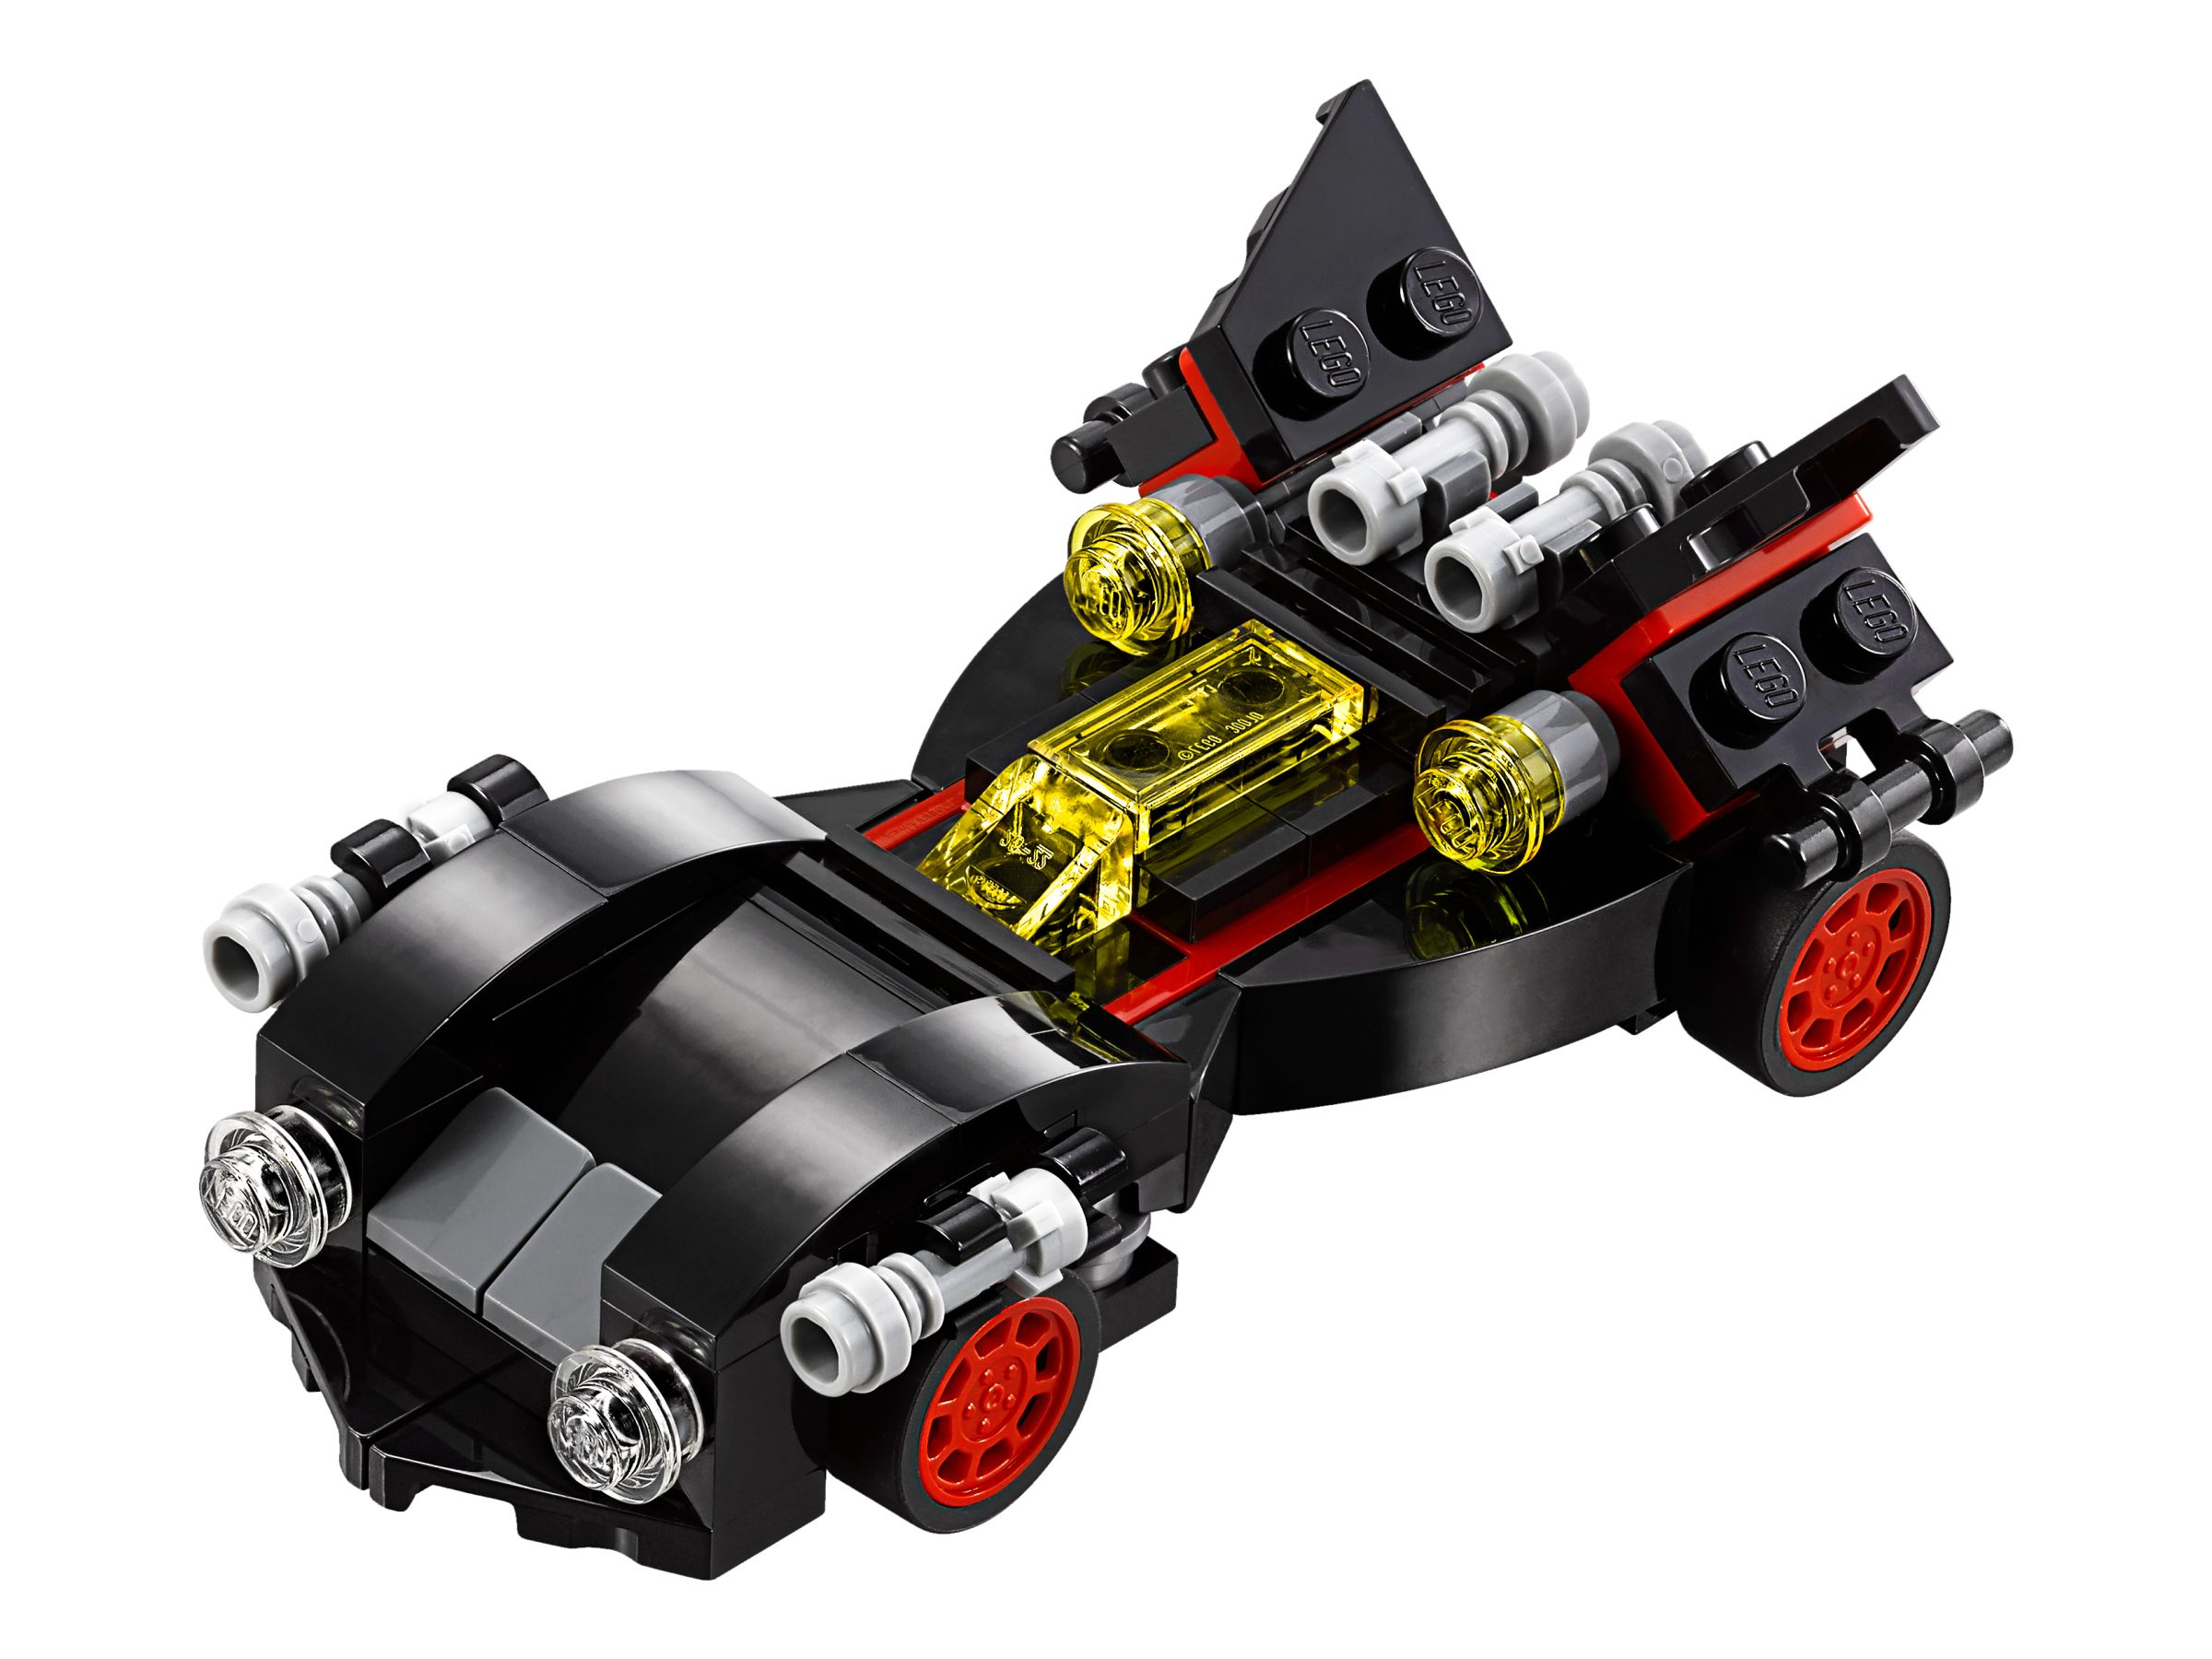 LEGO The LEGO Batman Movie 30526 LEGO 30526 The Mini Ultimate Batmobile Polybag LEGO_30526.jpg